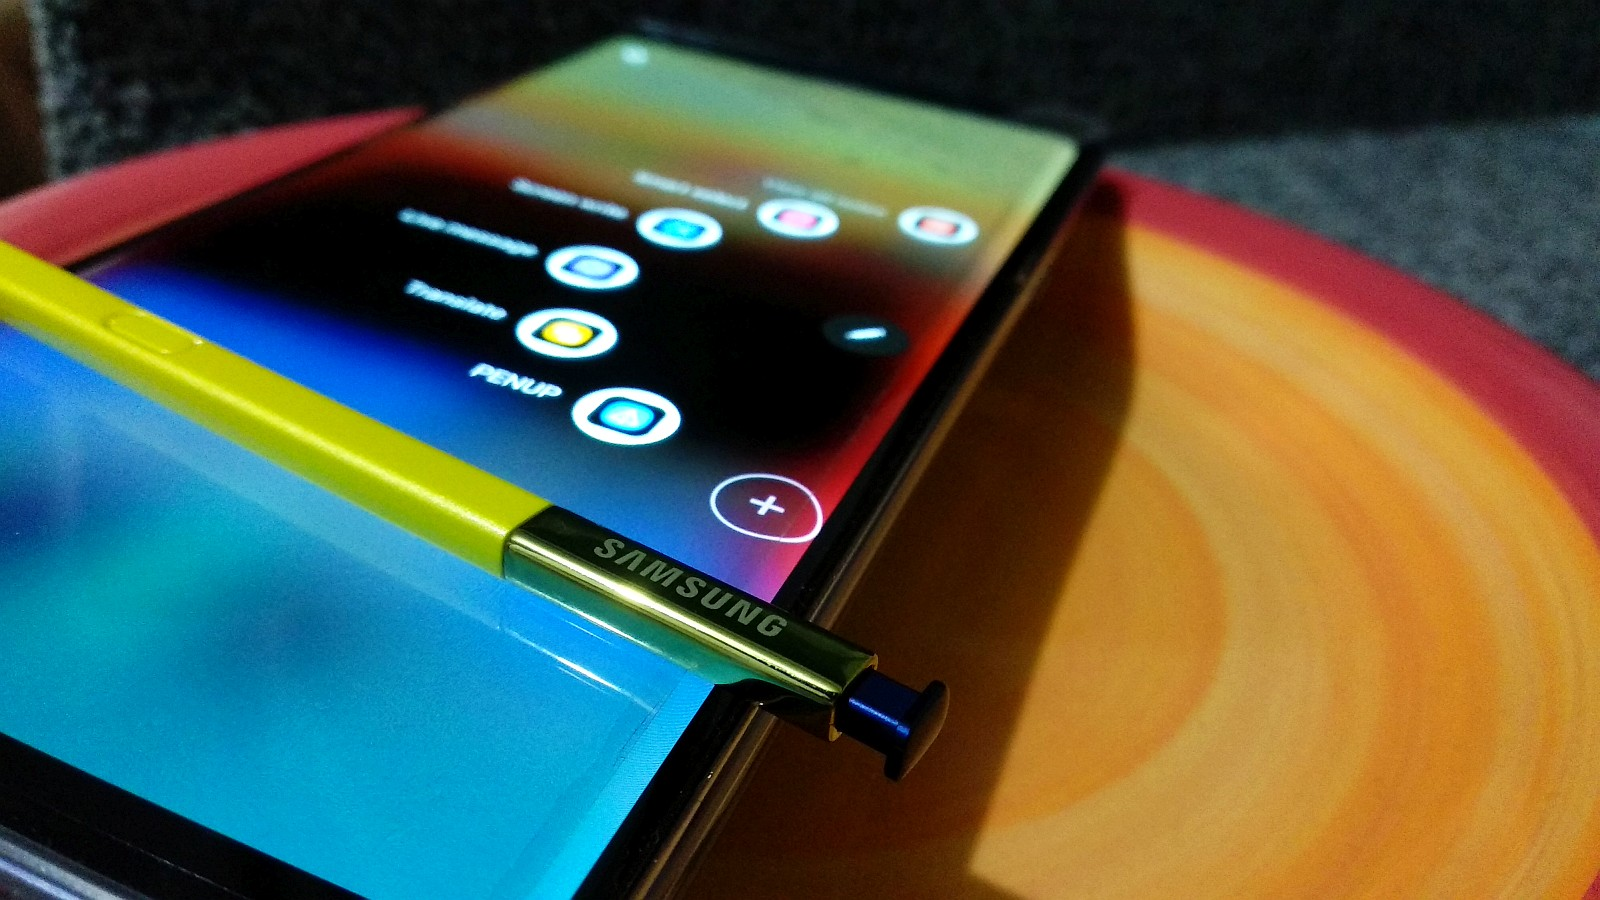 Galaxy Note 9 catches fire in a woman's purse.